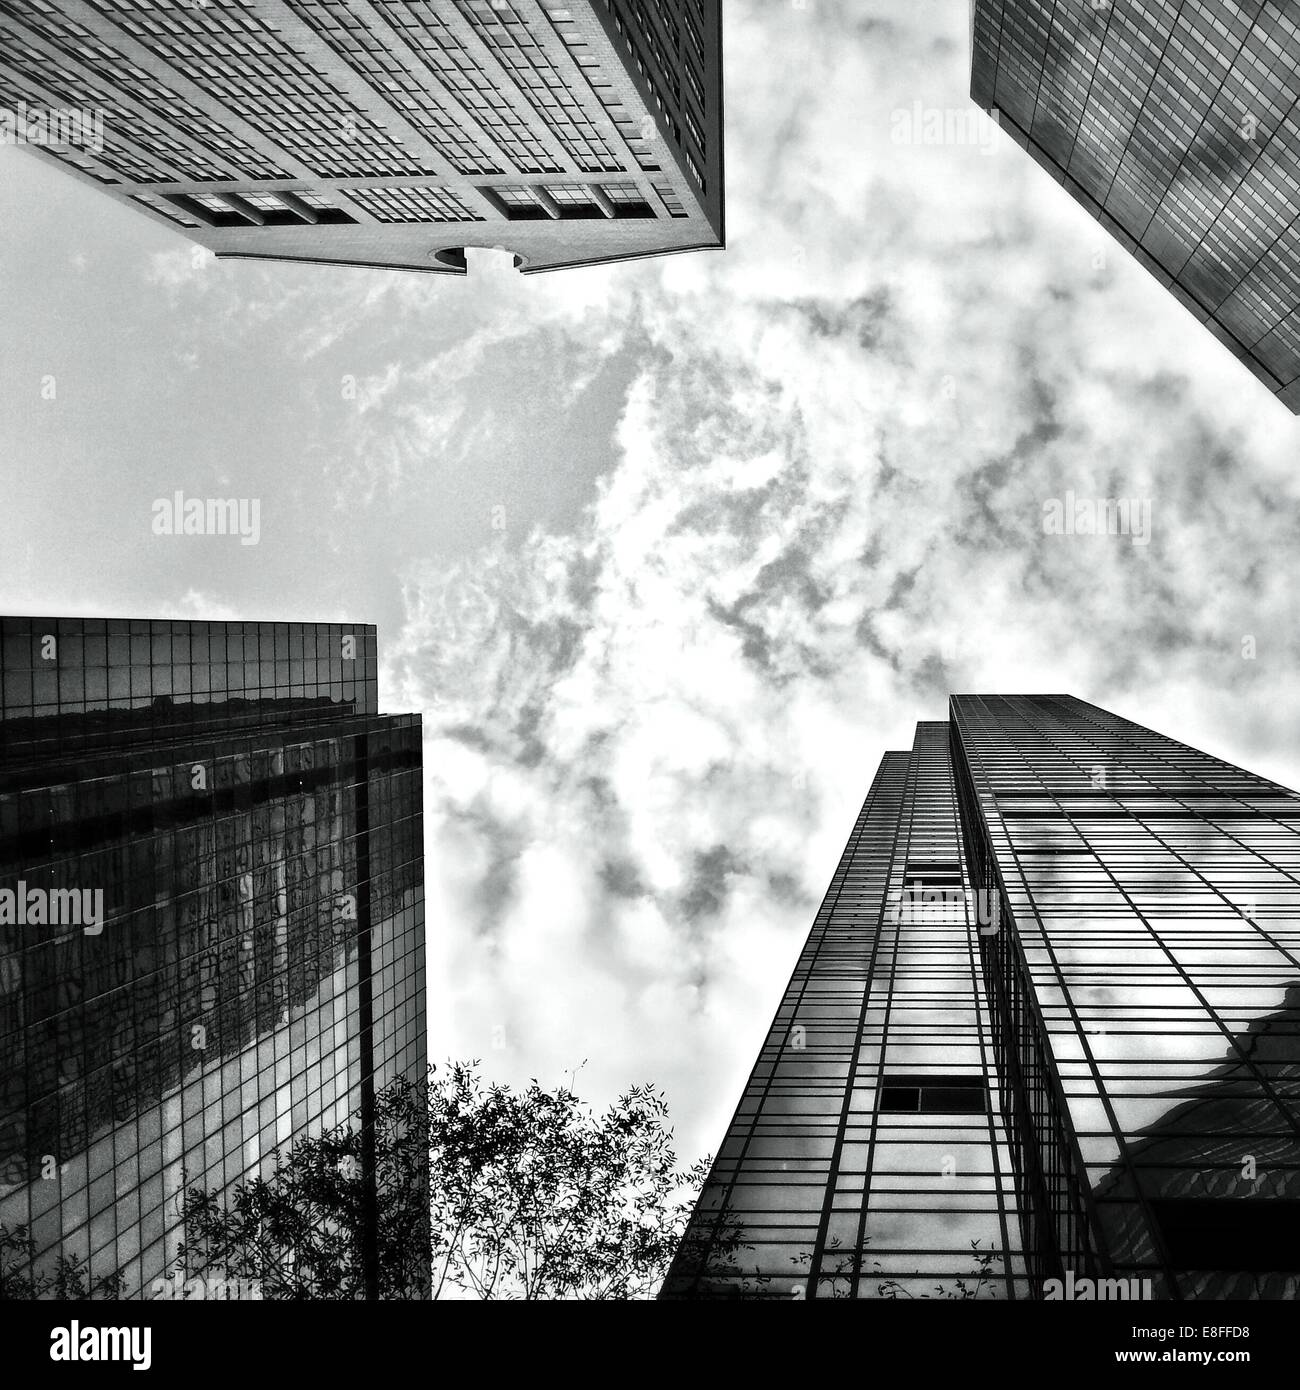 USA, New York State, New York City, Looking up at Skyscrapers of Madison and Fifth Avenues - Stock Image